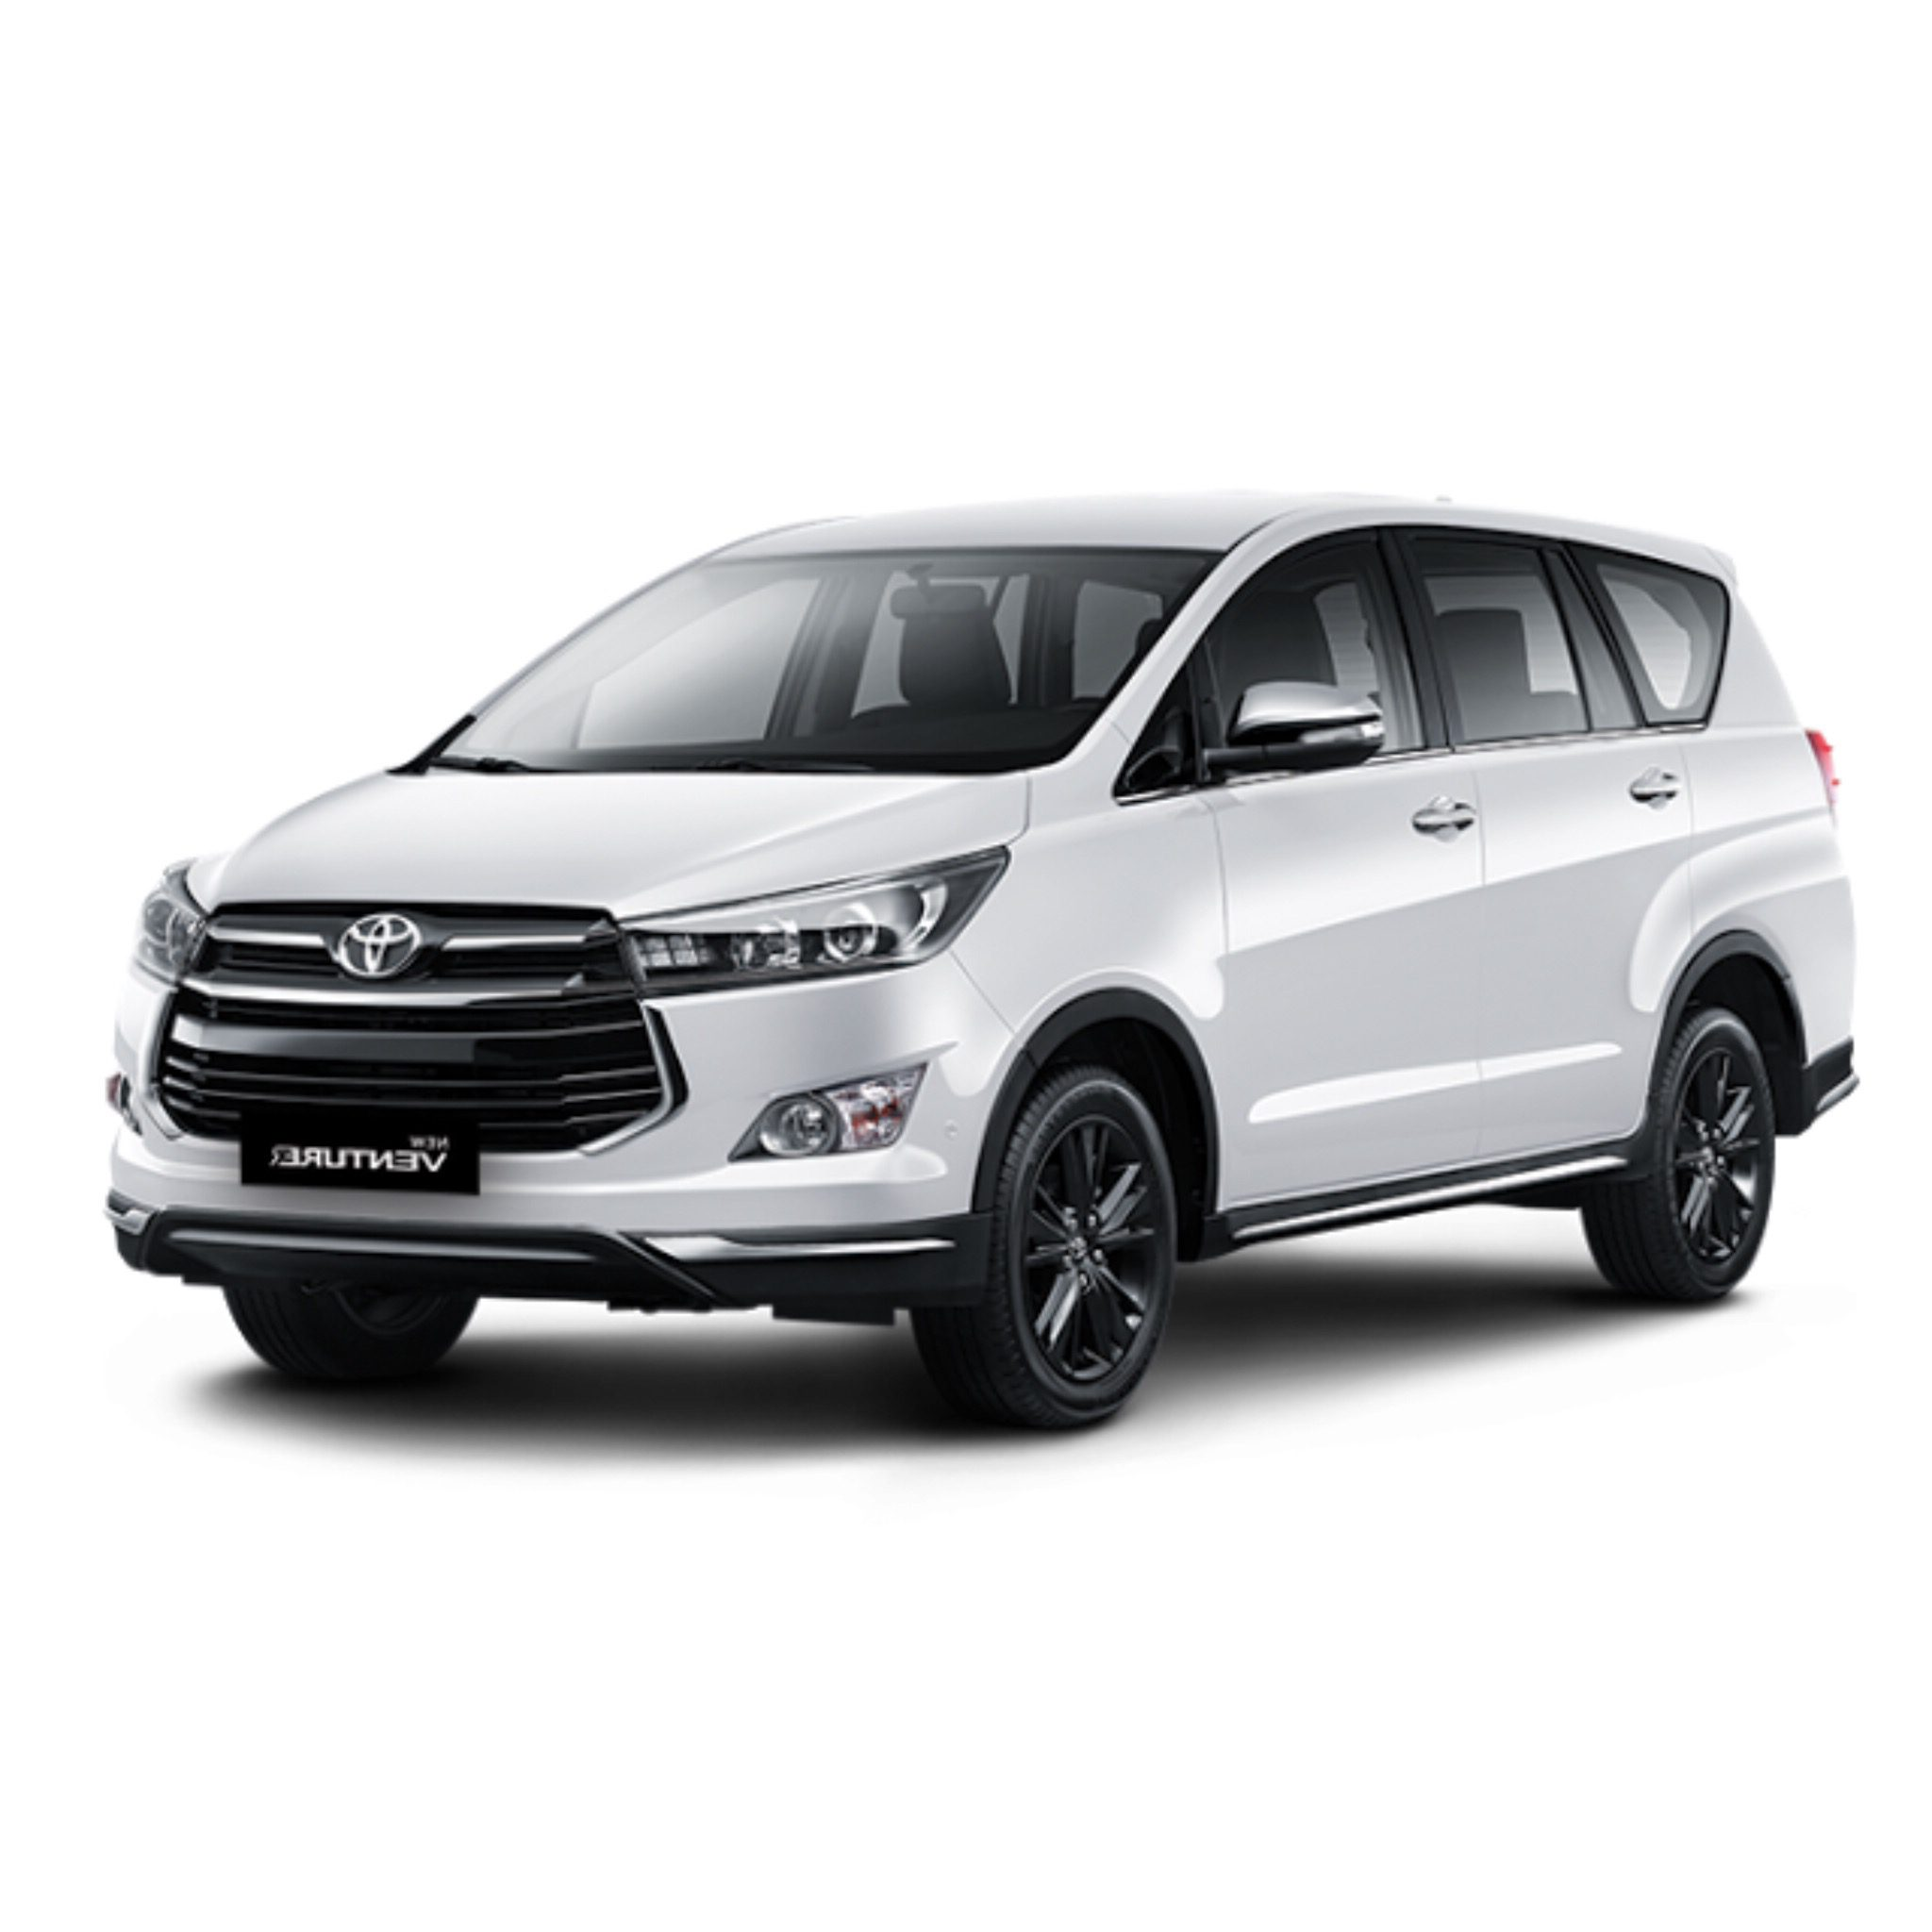 all new innova venturer grand veloz 1.5 vs mobilio rs kijang toyota jogja dealer resmi nasmoco